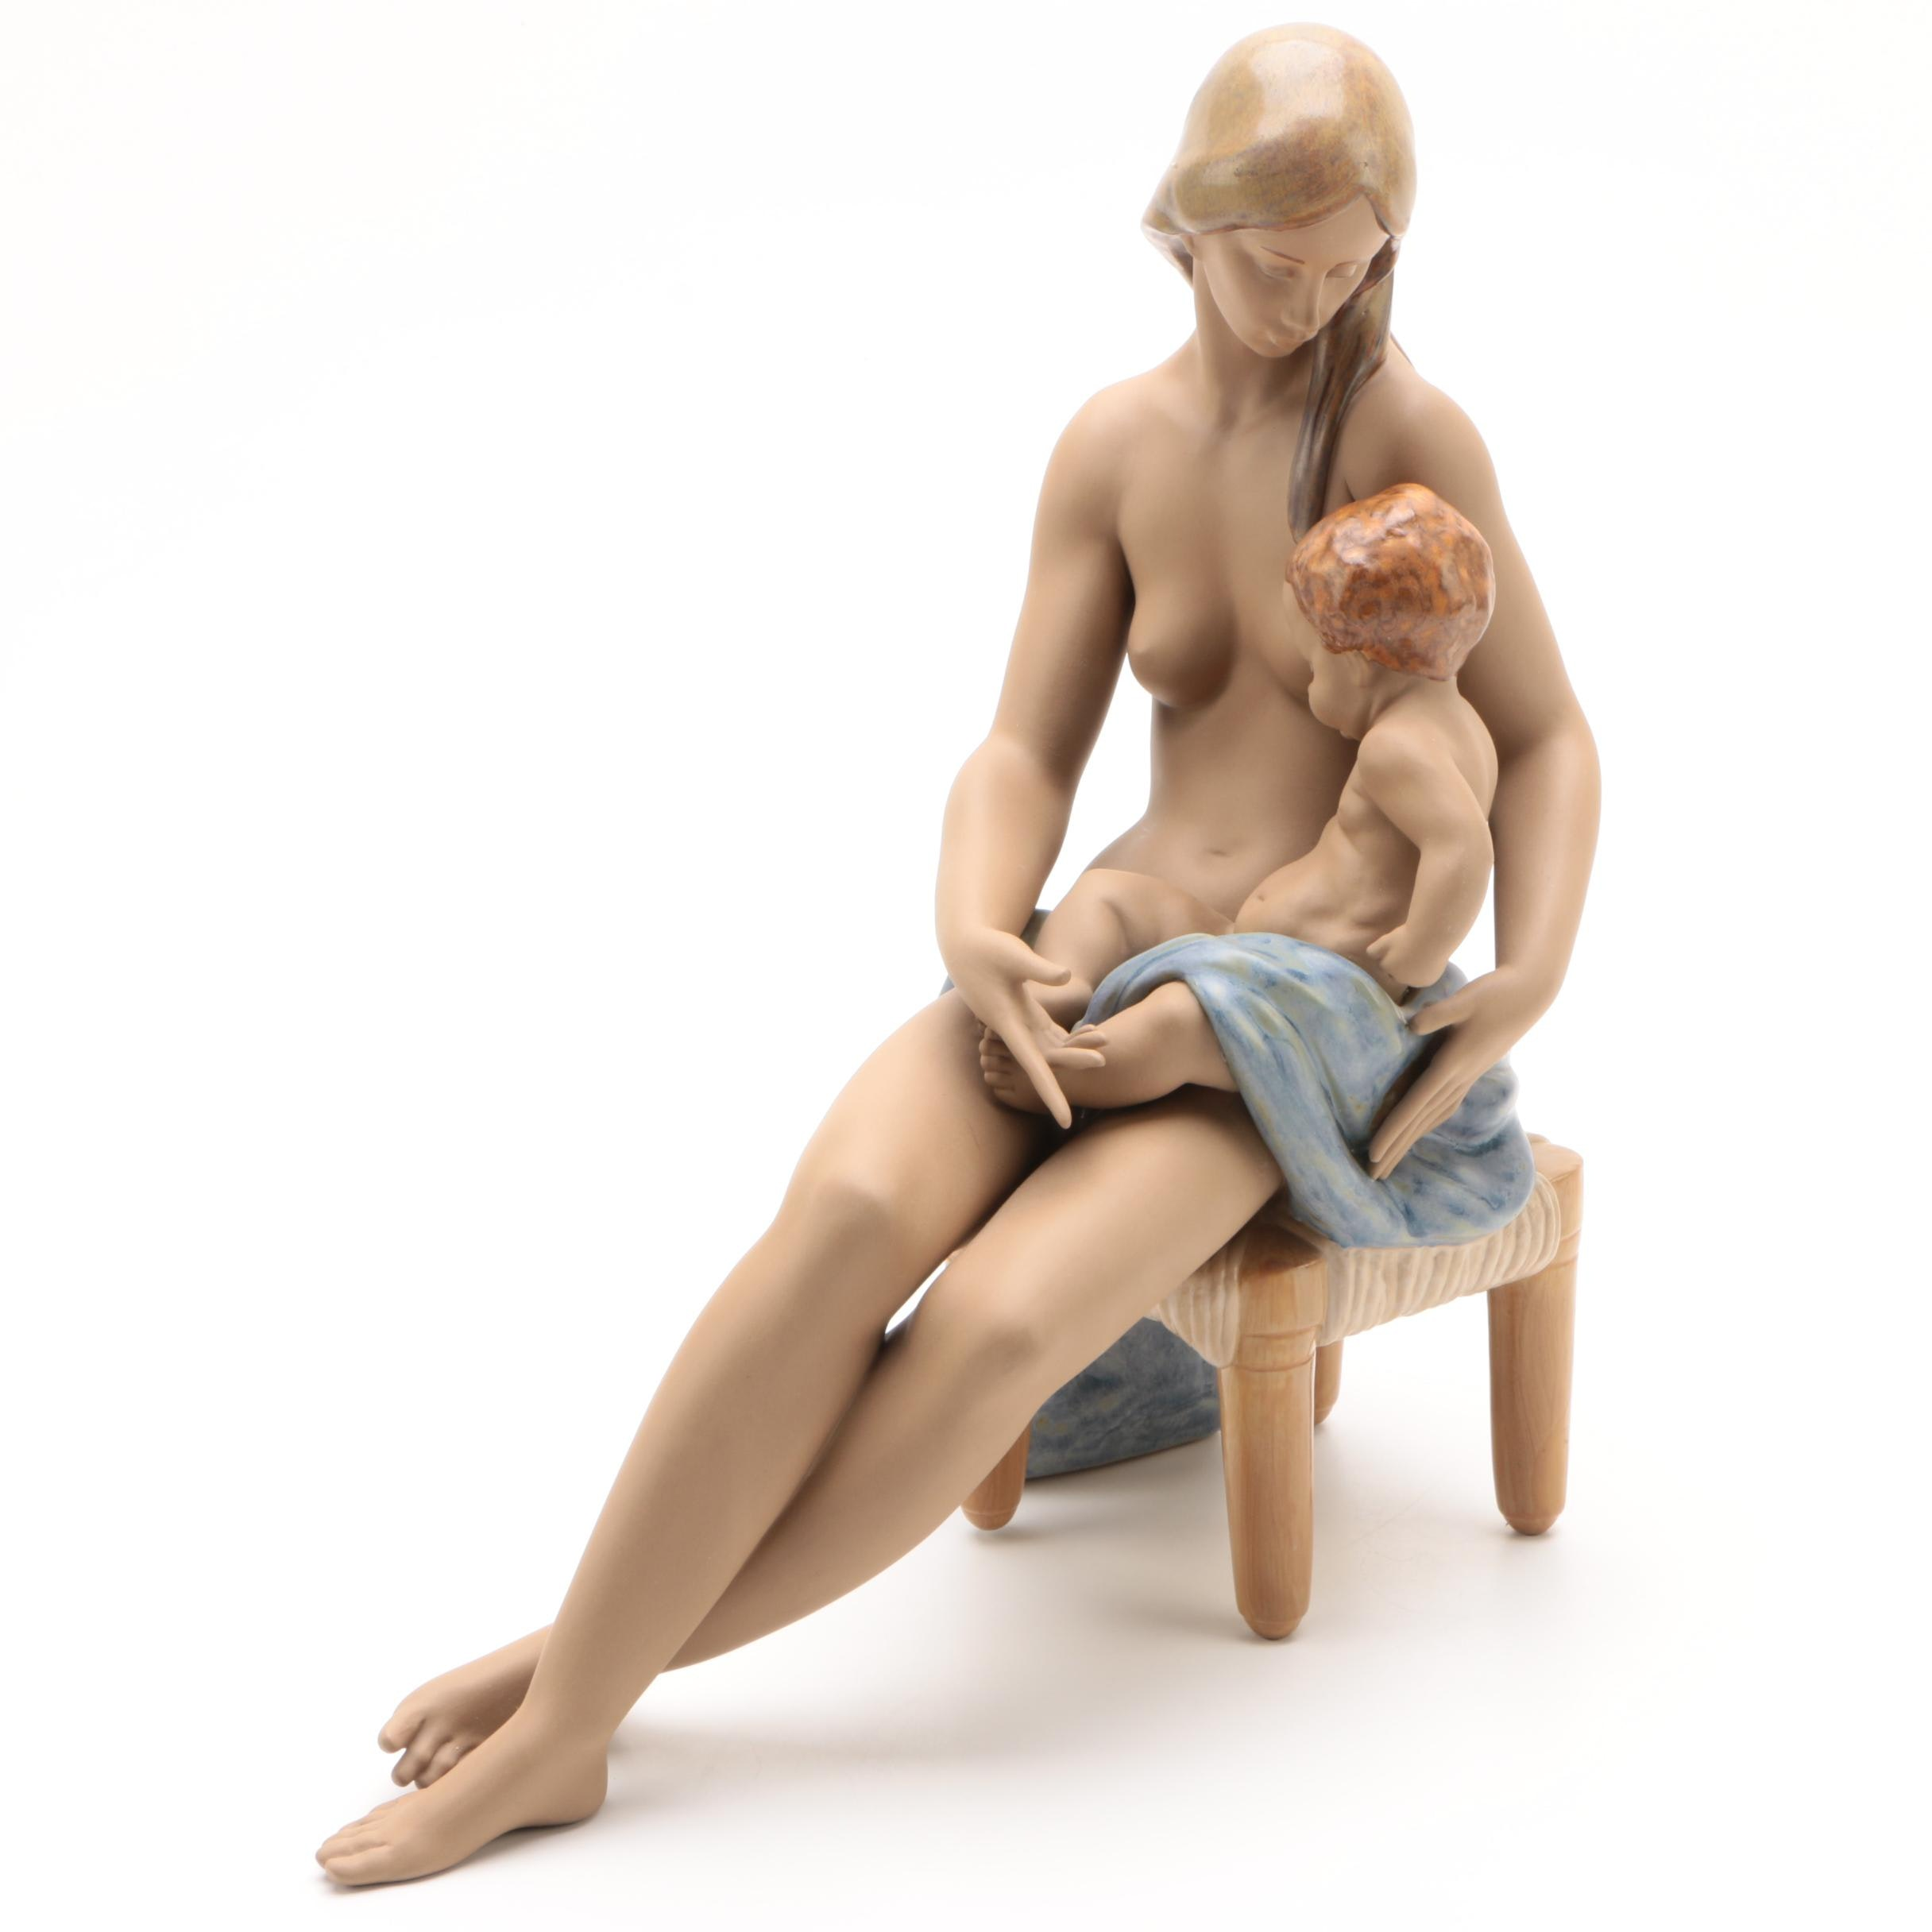 Lladró Nude Woman with Child Porcelain Figurine, 1995